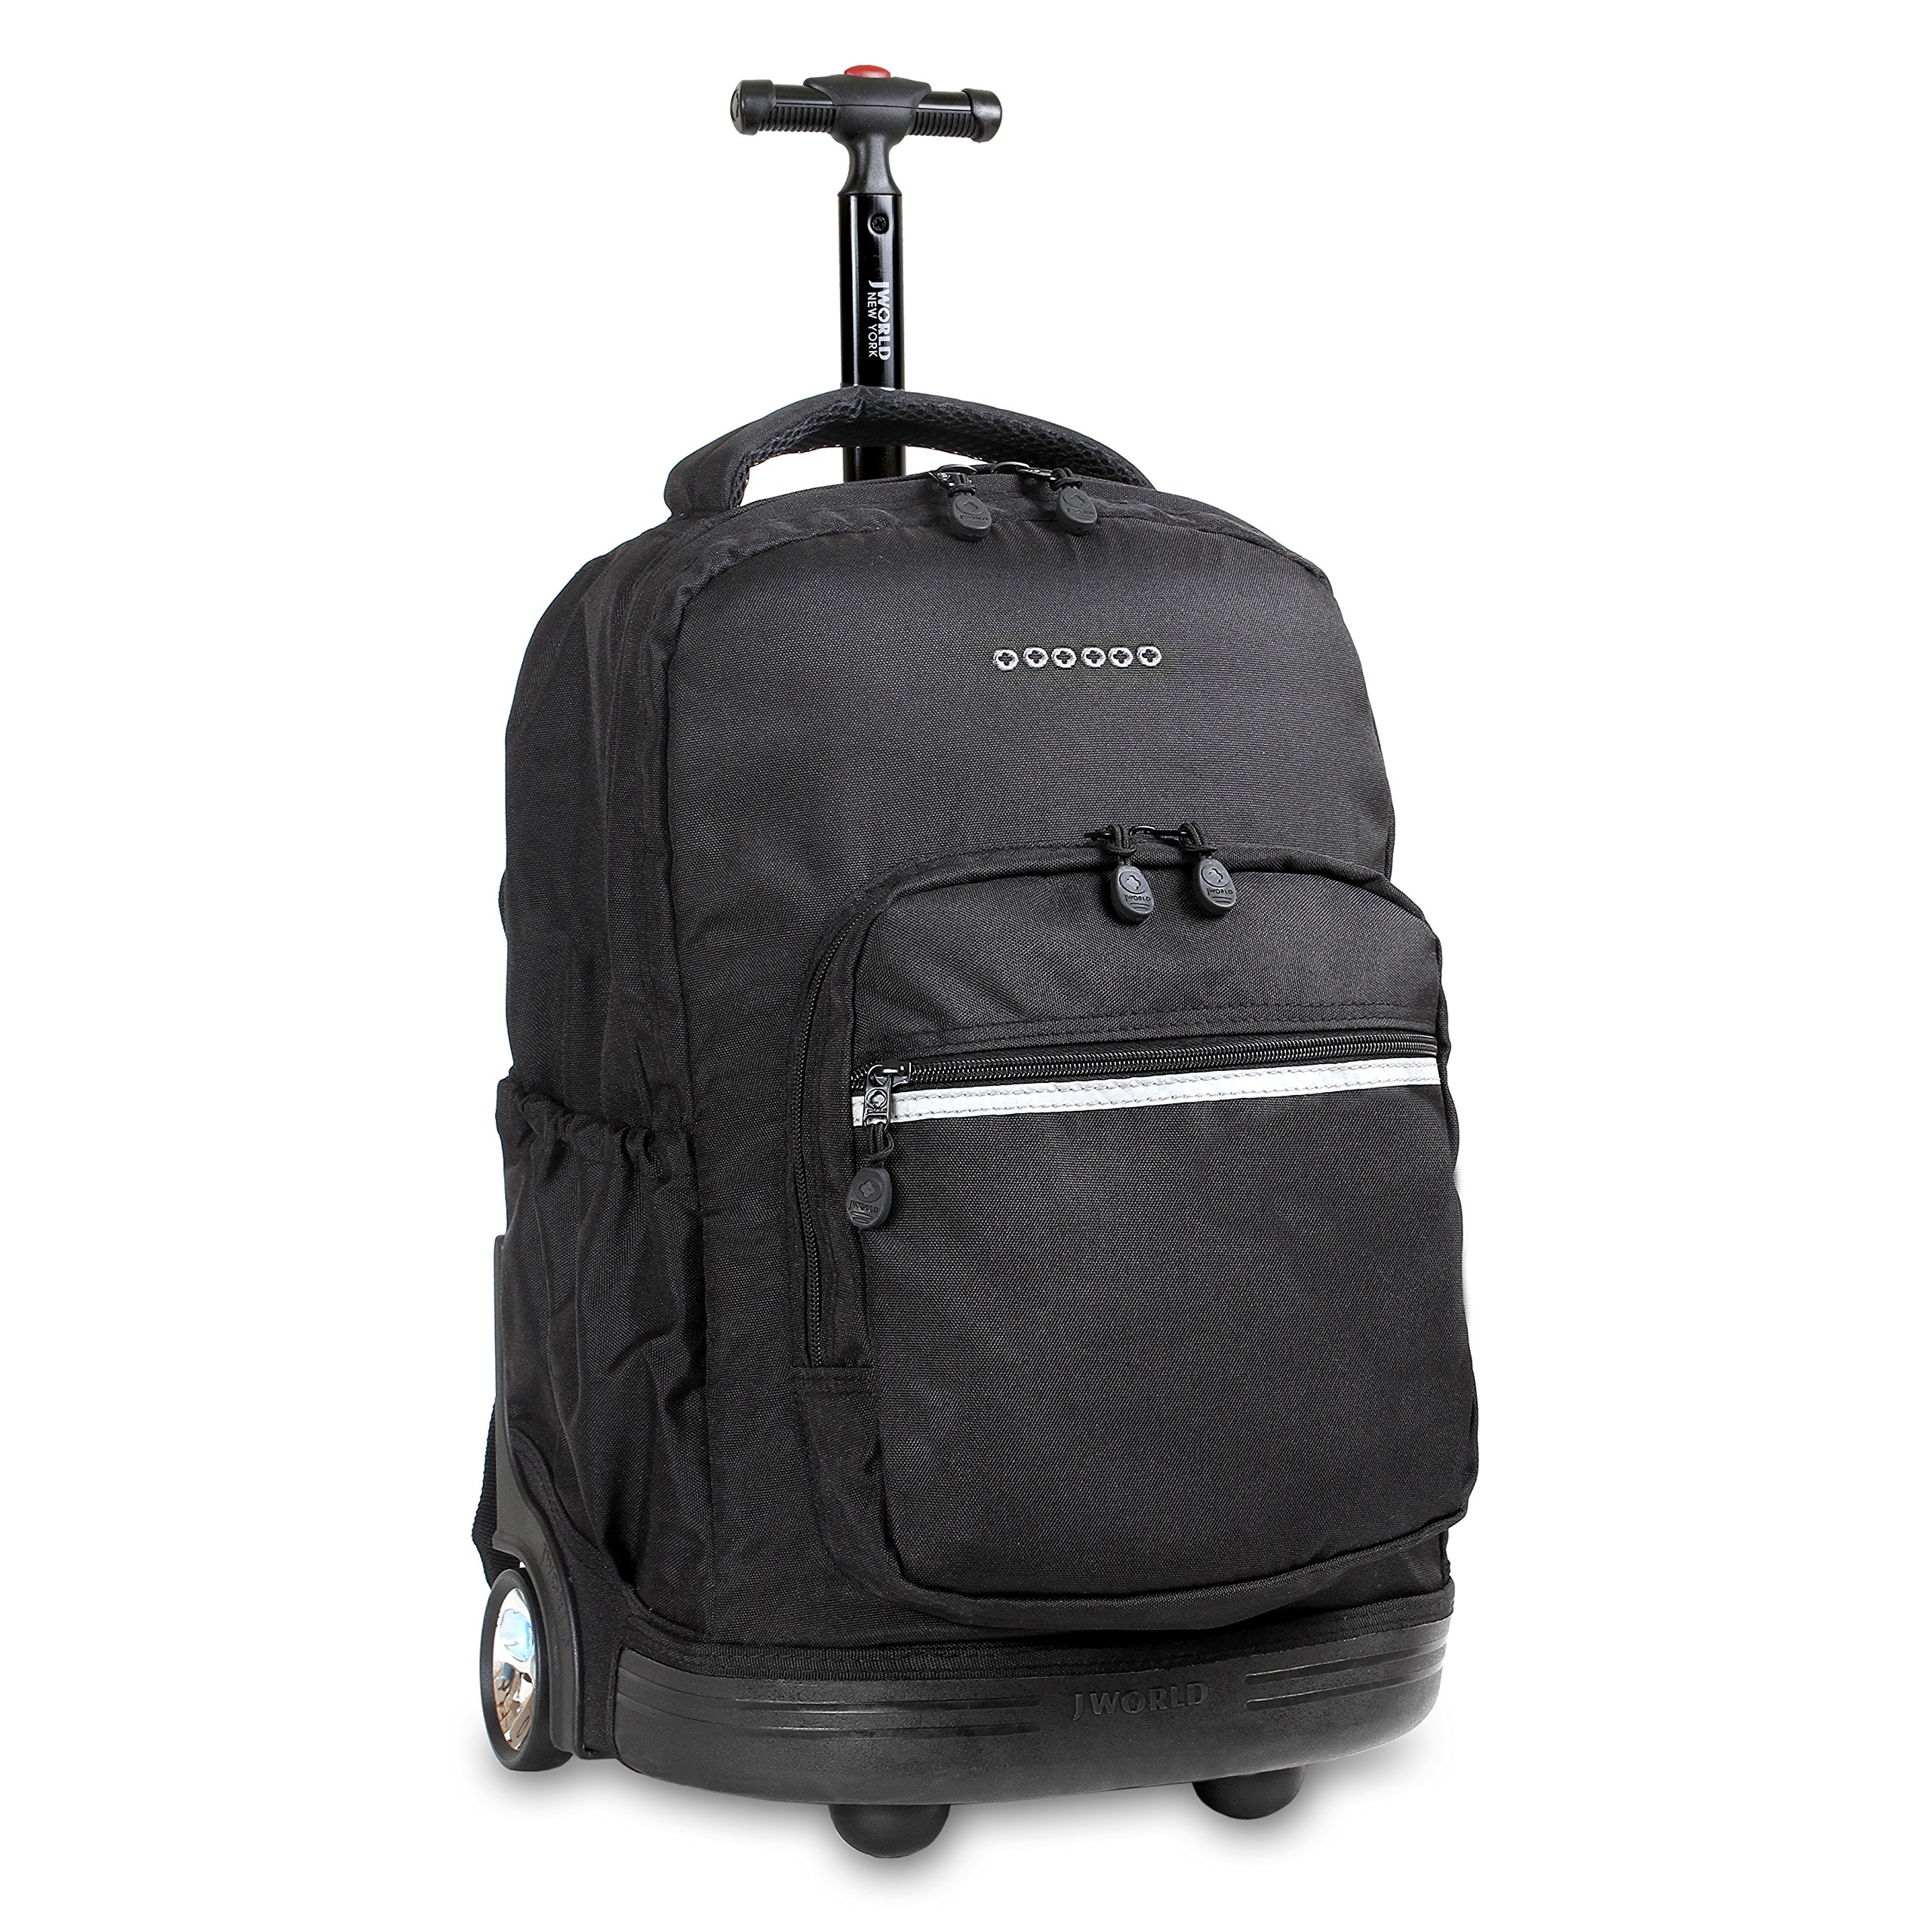 J World New York Sunrise Rolling Backpack, Black, One Size by J World New York